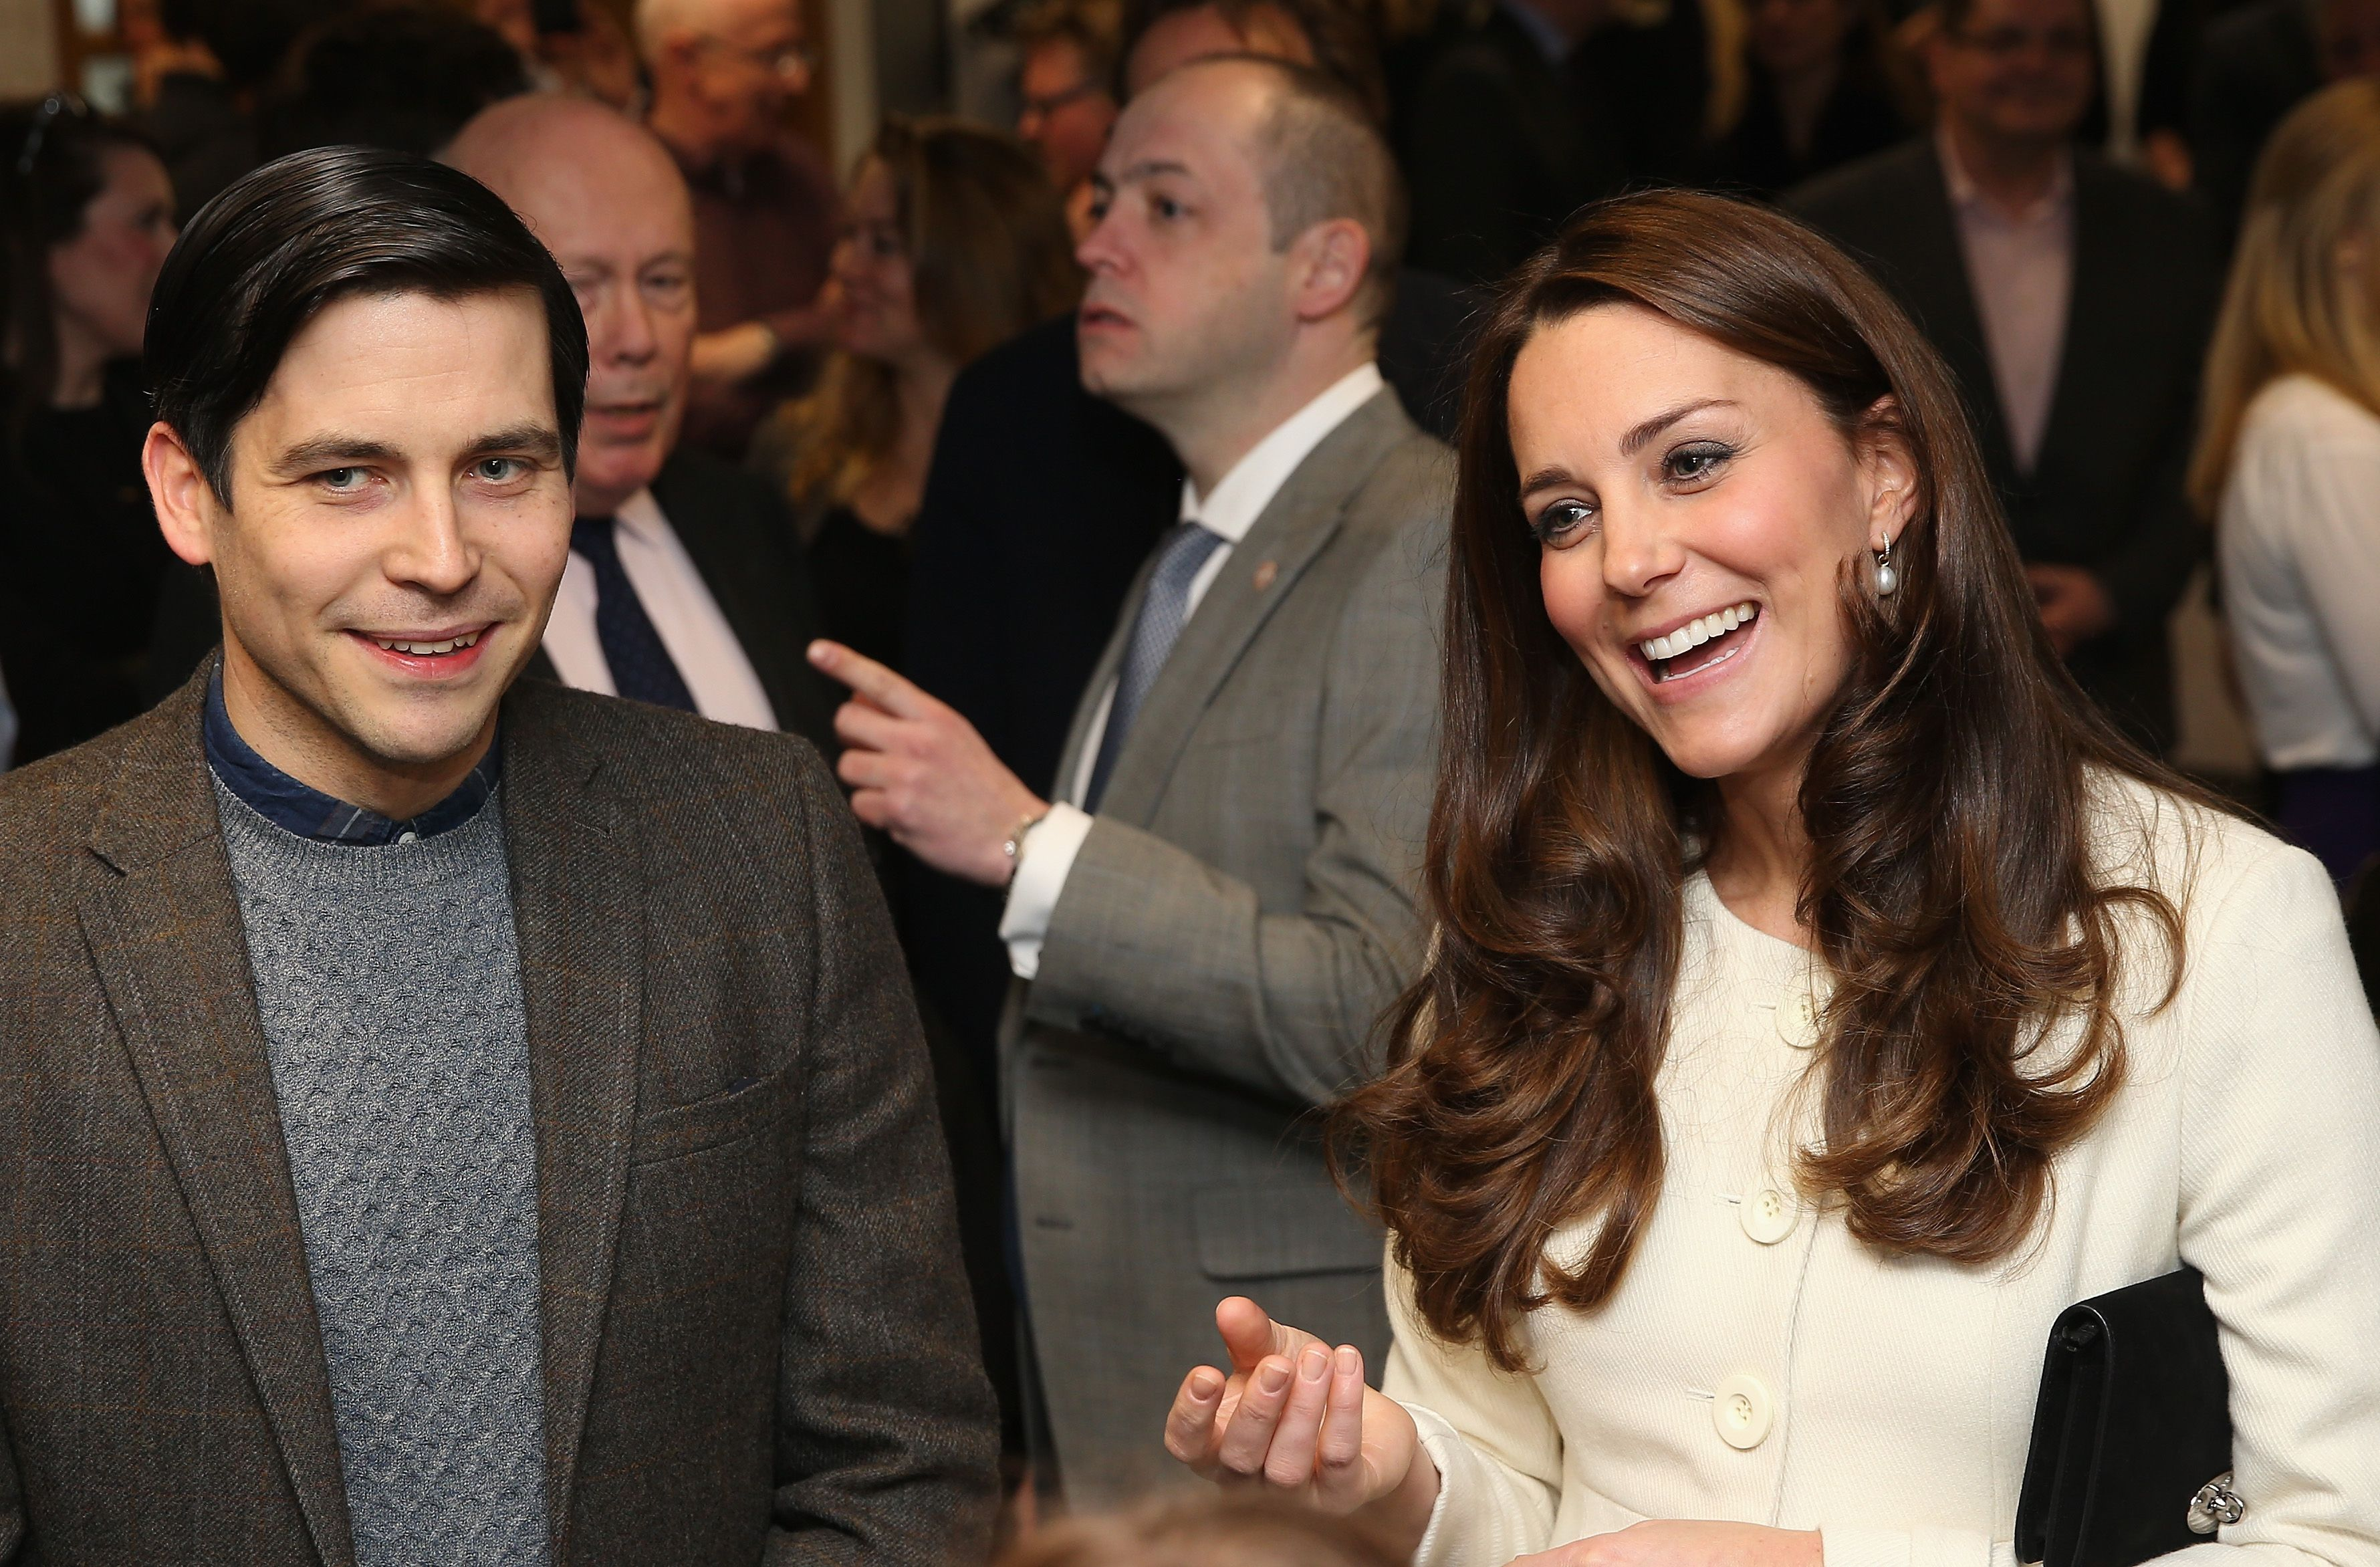 Kate Middleton Has The Cutest Meet And Greet On The Downton Abbey